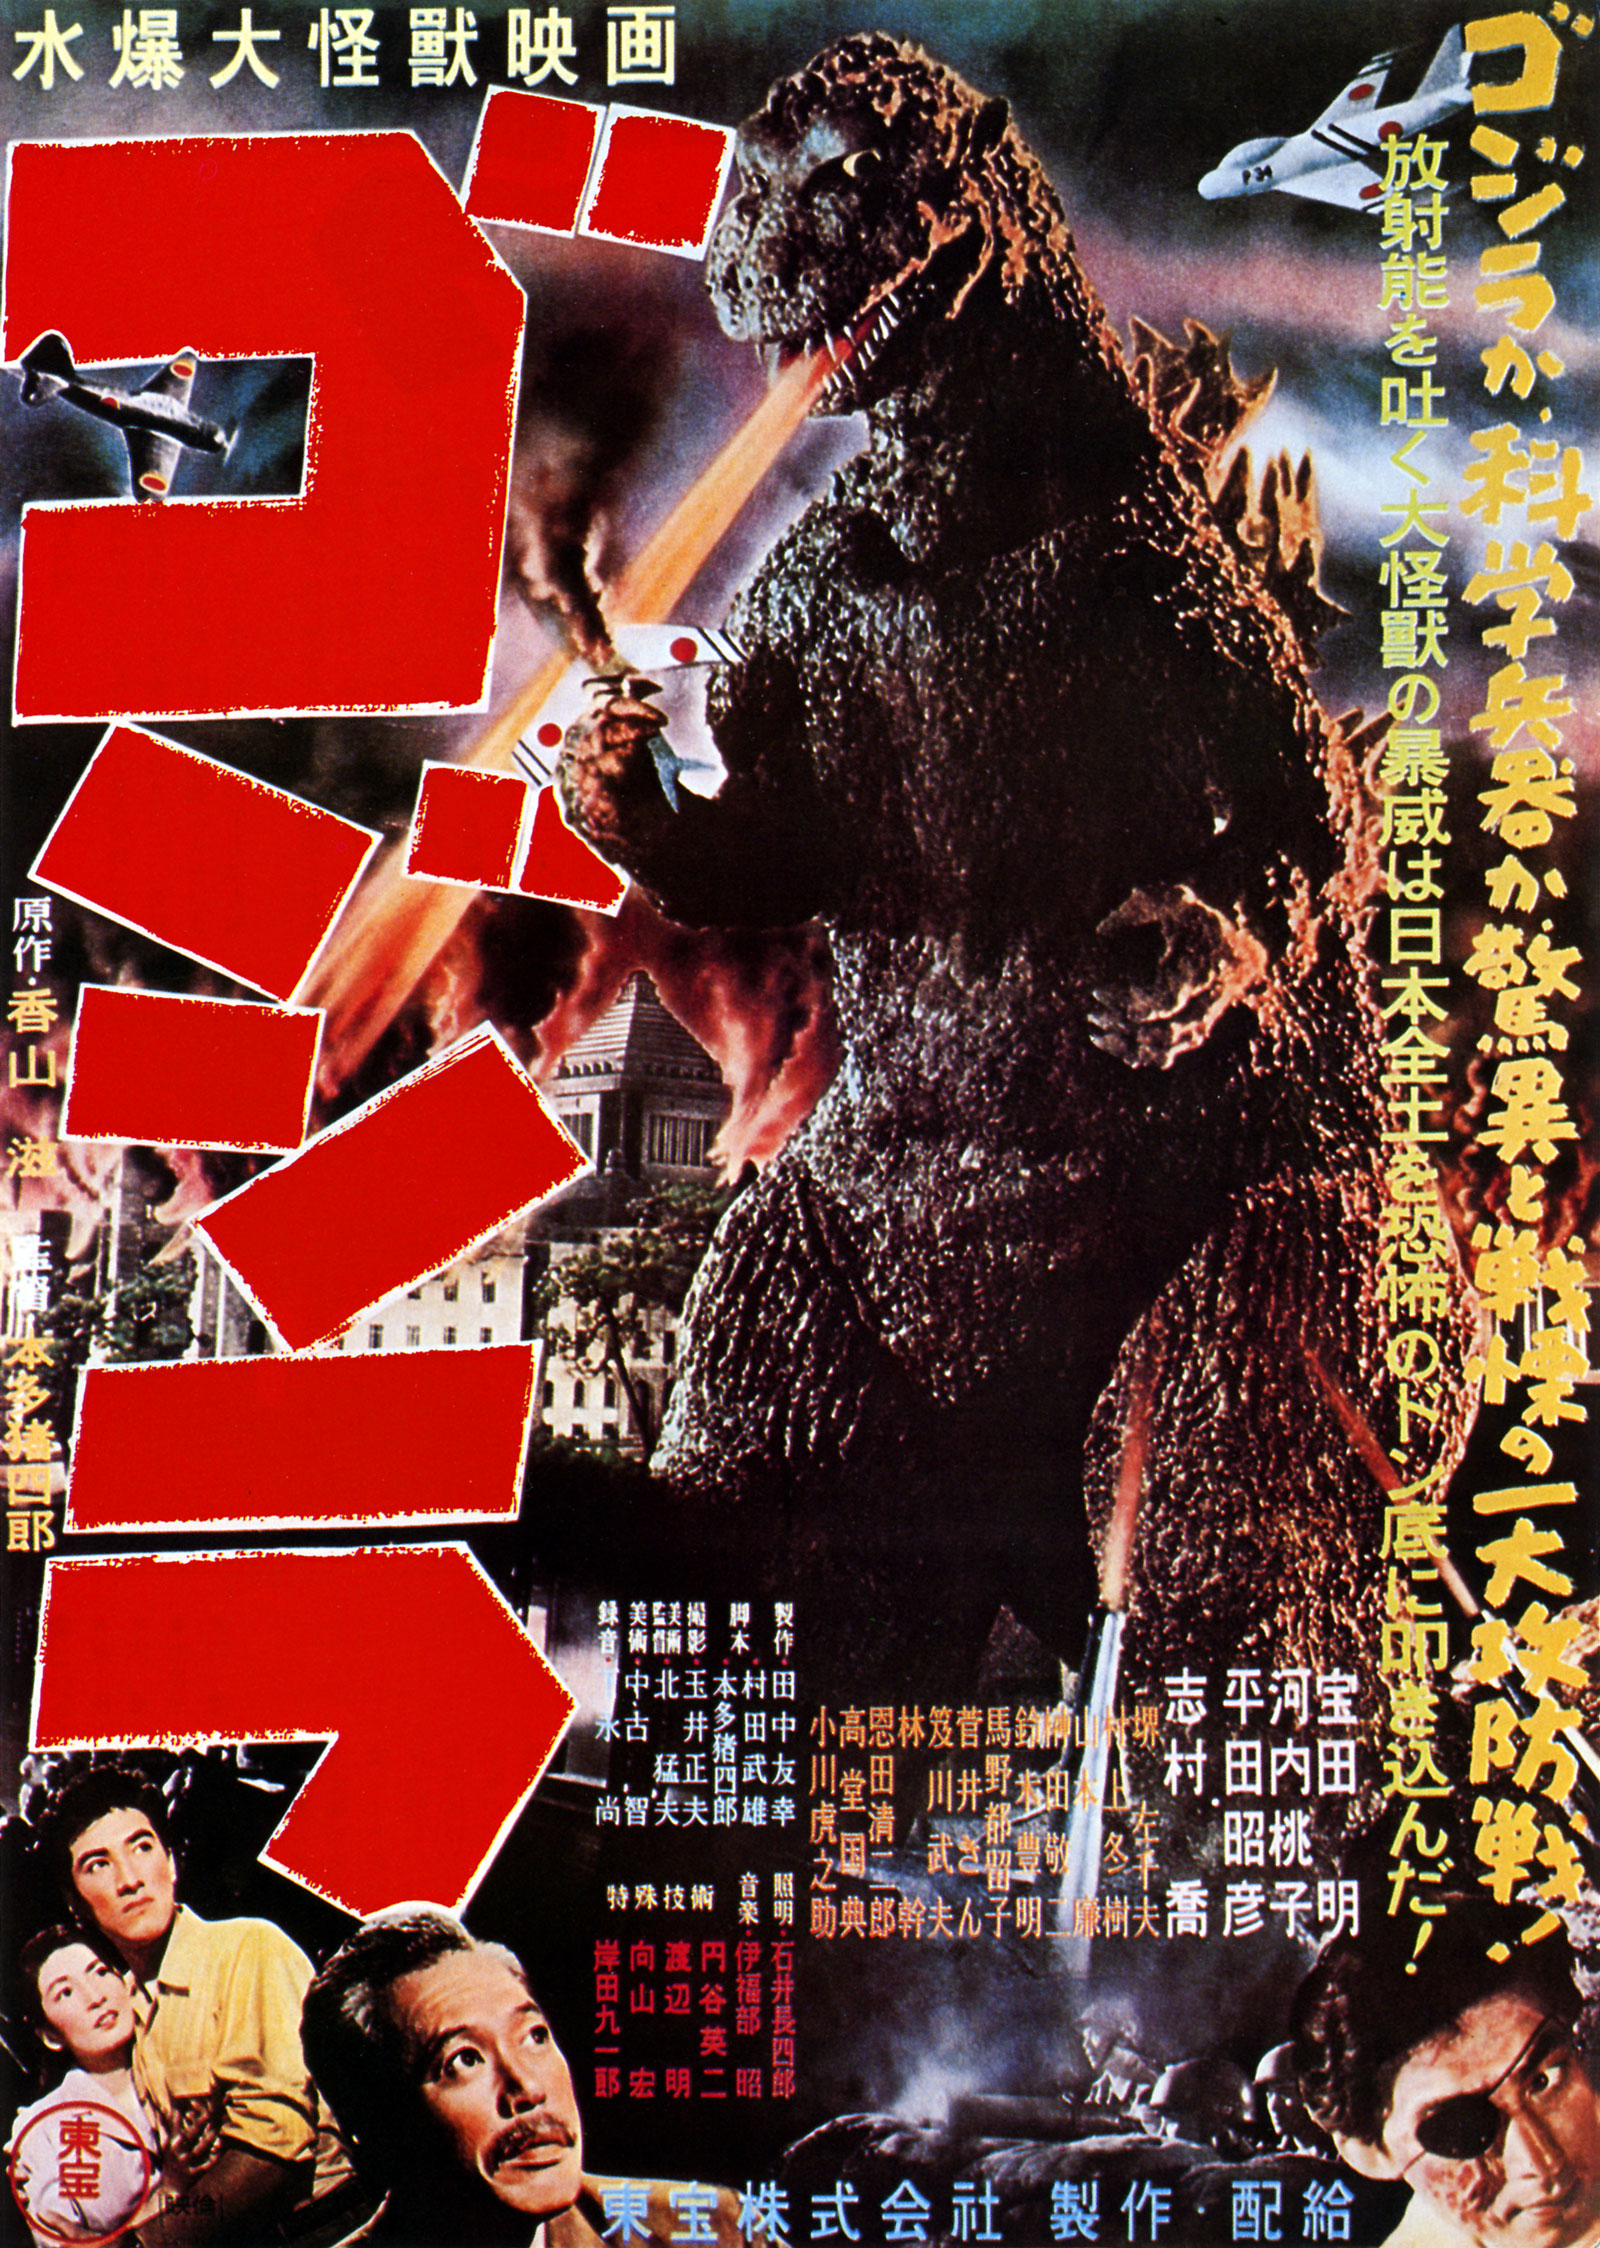 Godzilla 1954 movie poster